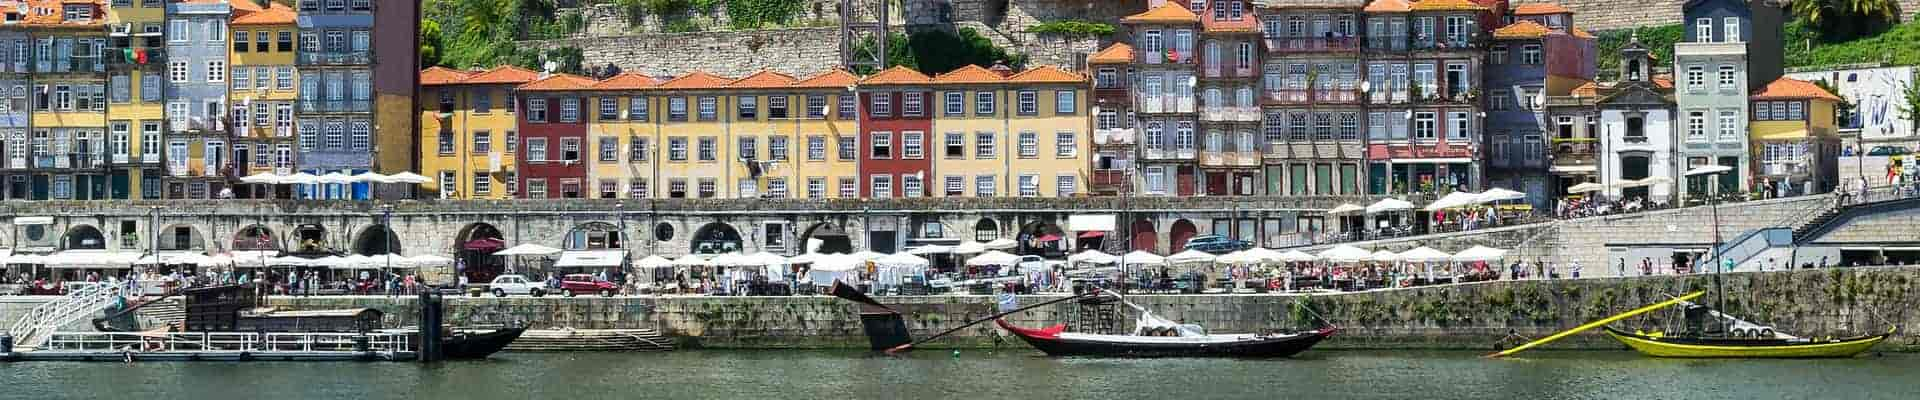 Porto - What to see in Porto - What to visit in Porto - What to do in Porto - Porto Portugal